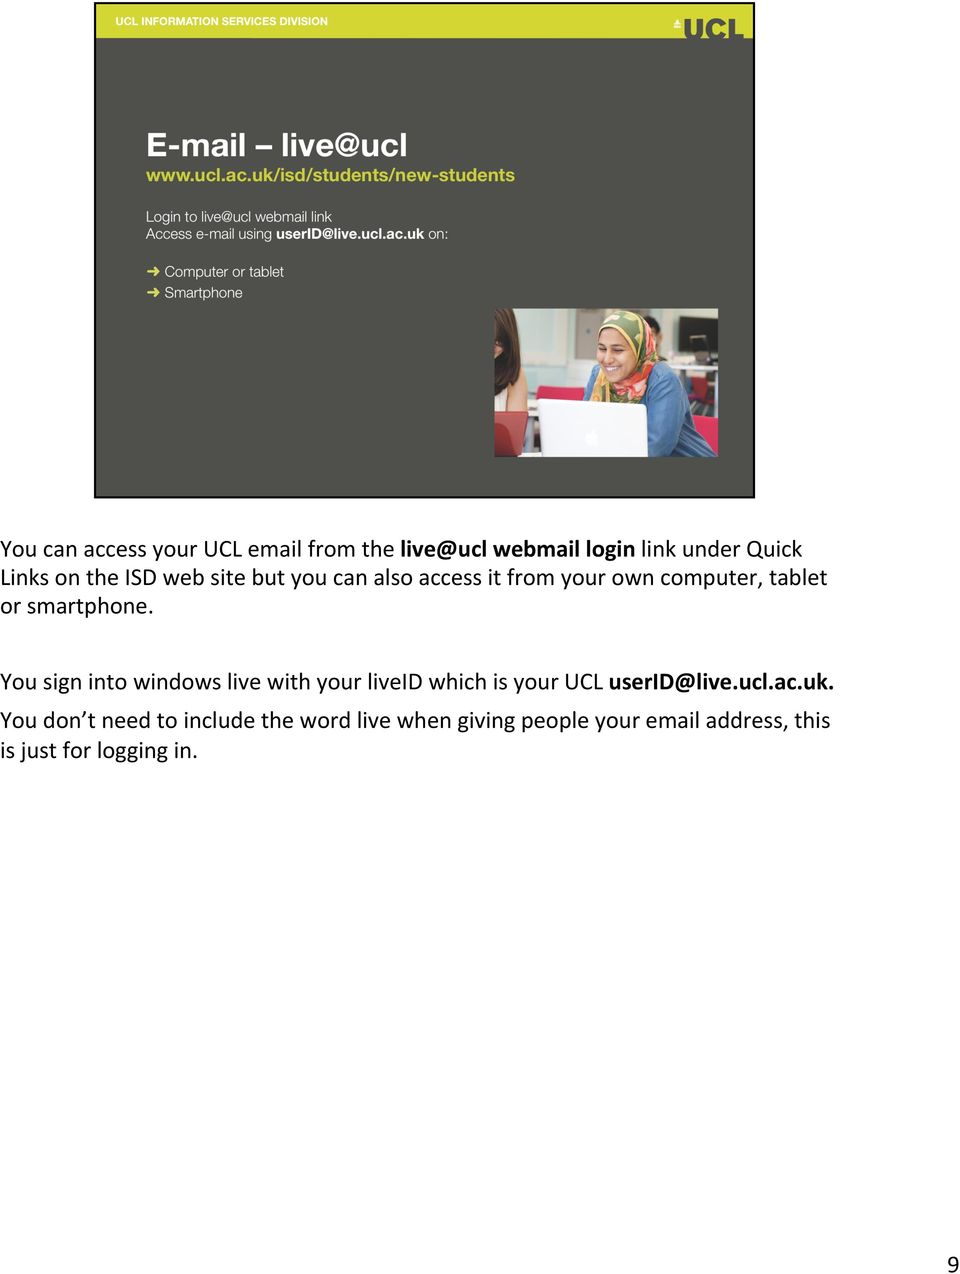 You sign into windows live with your liveid which is your UCL userid@live.ucl.ac.uk.